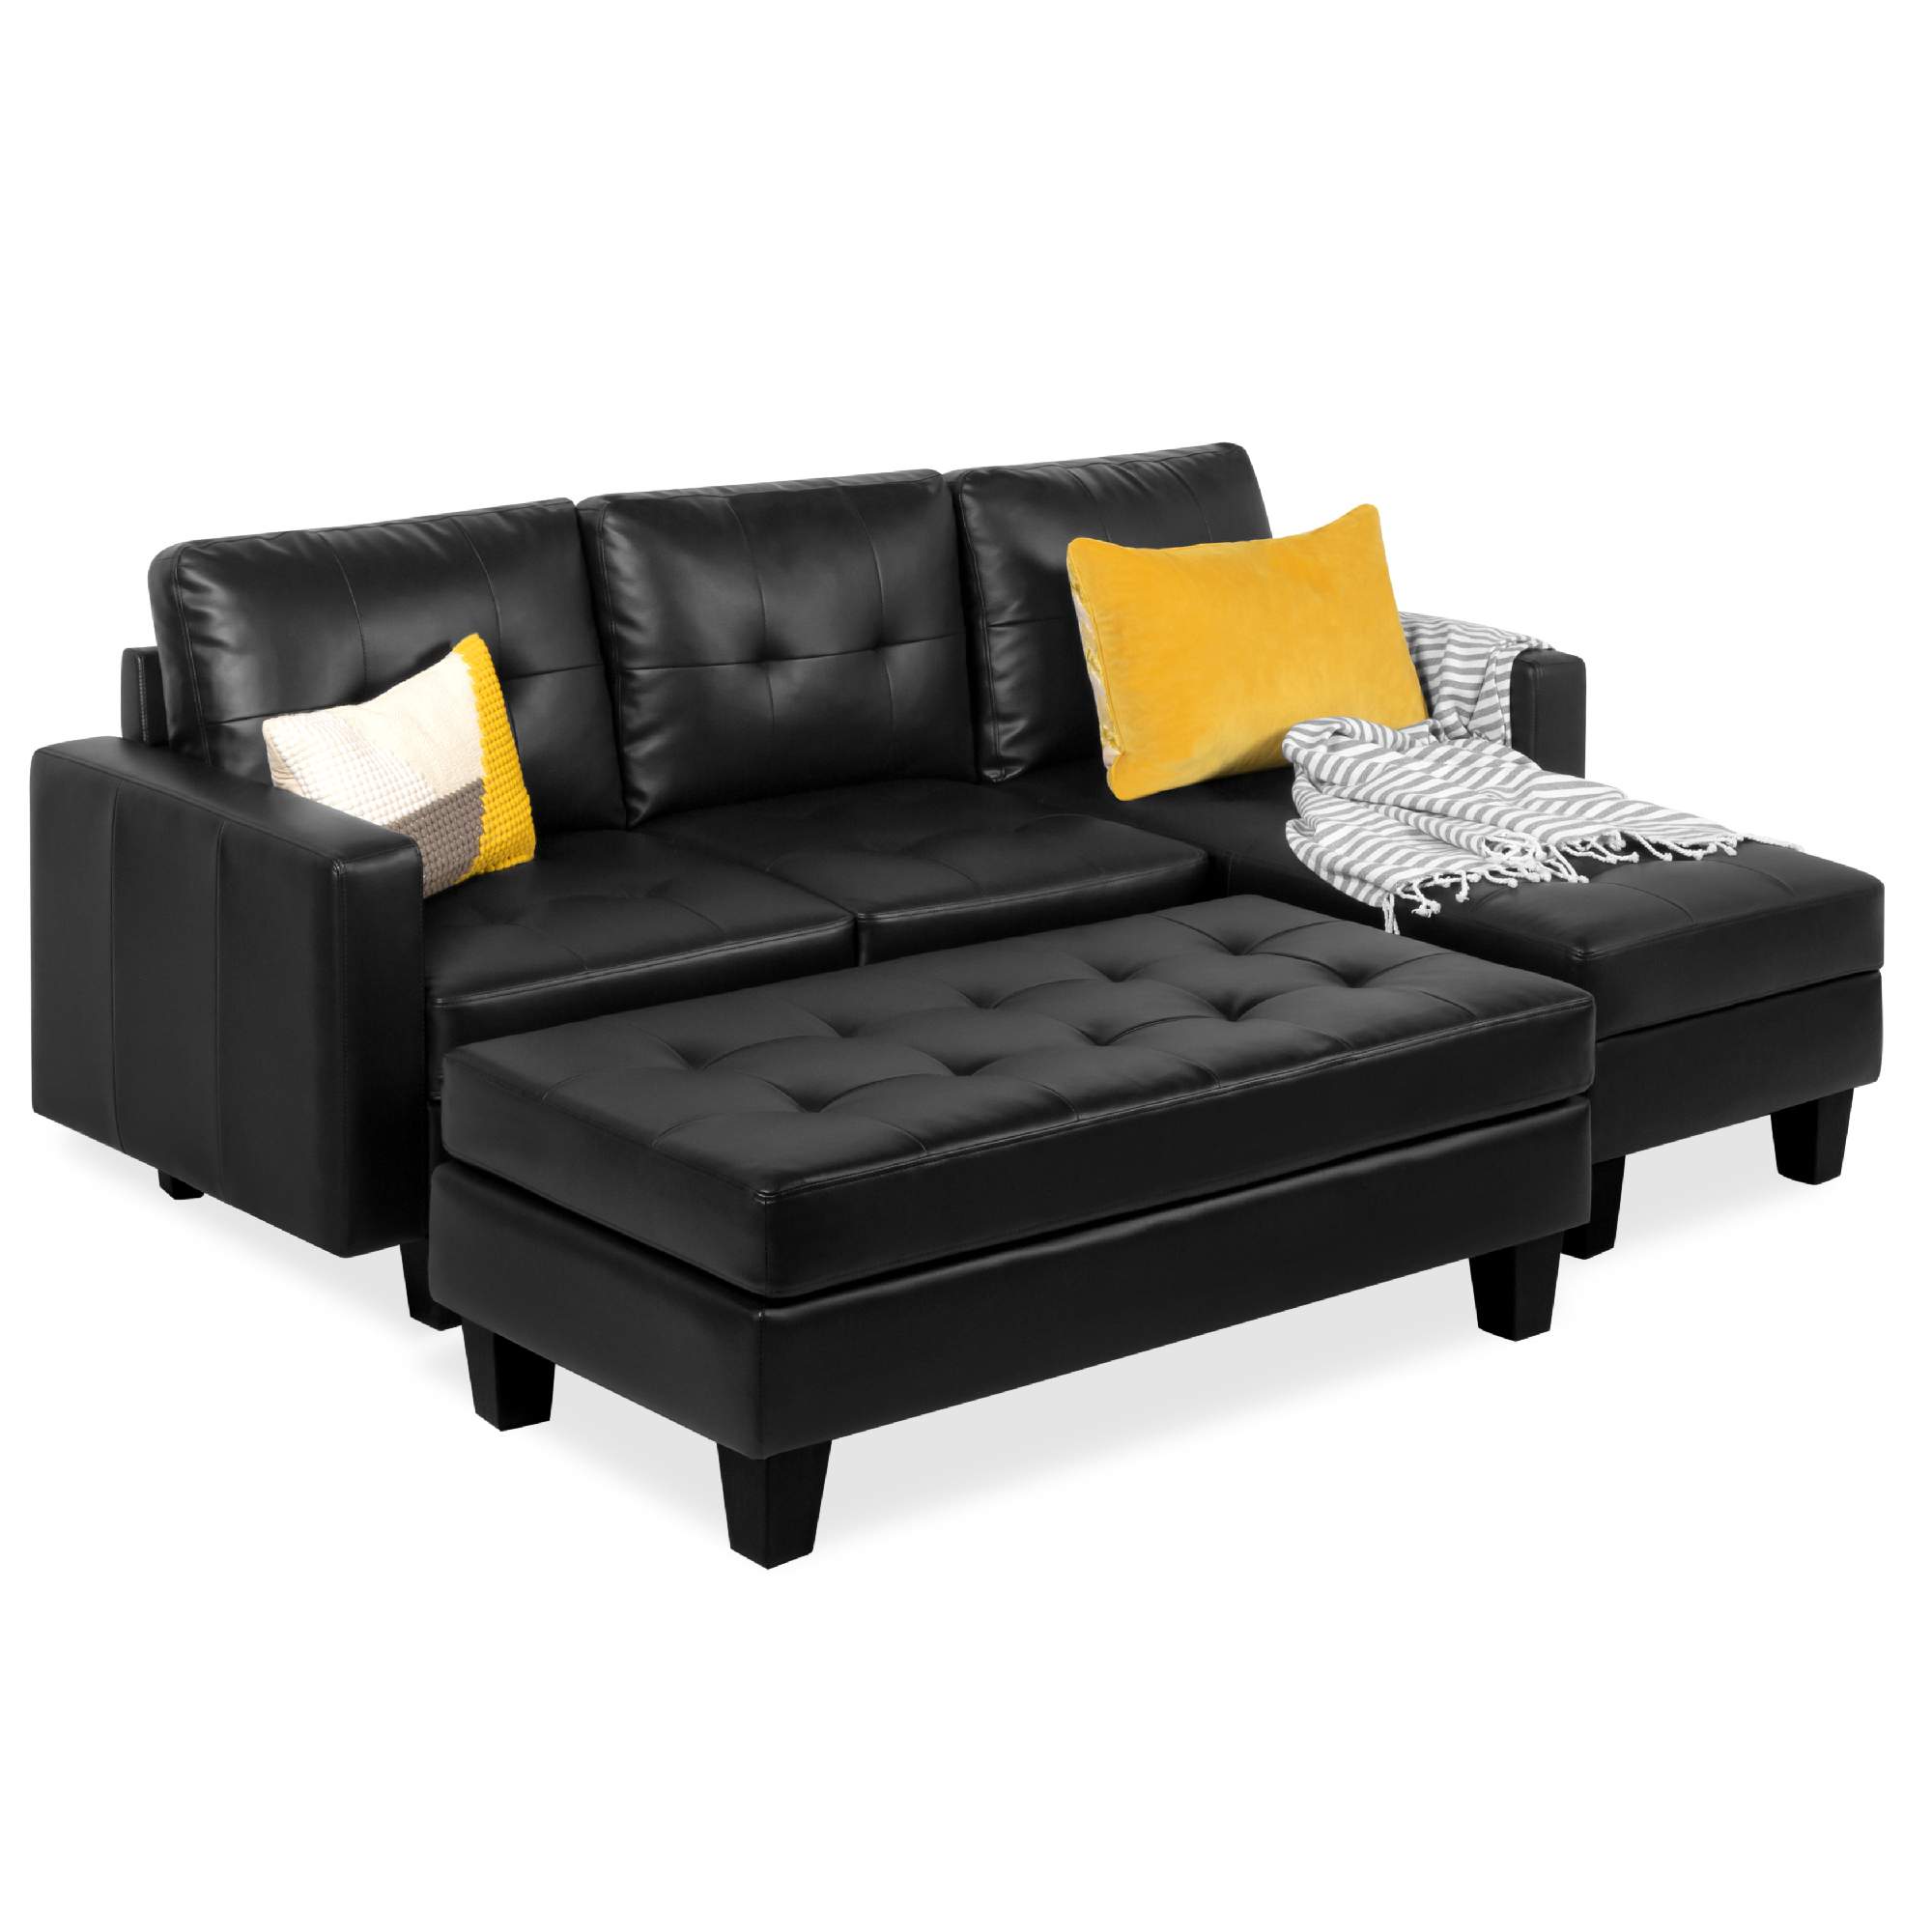 best choice products 3 seat l shape tufted faux leather sectional sofa couch set w chaise lounge ottoman bench black walmart com